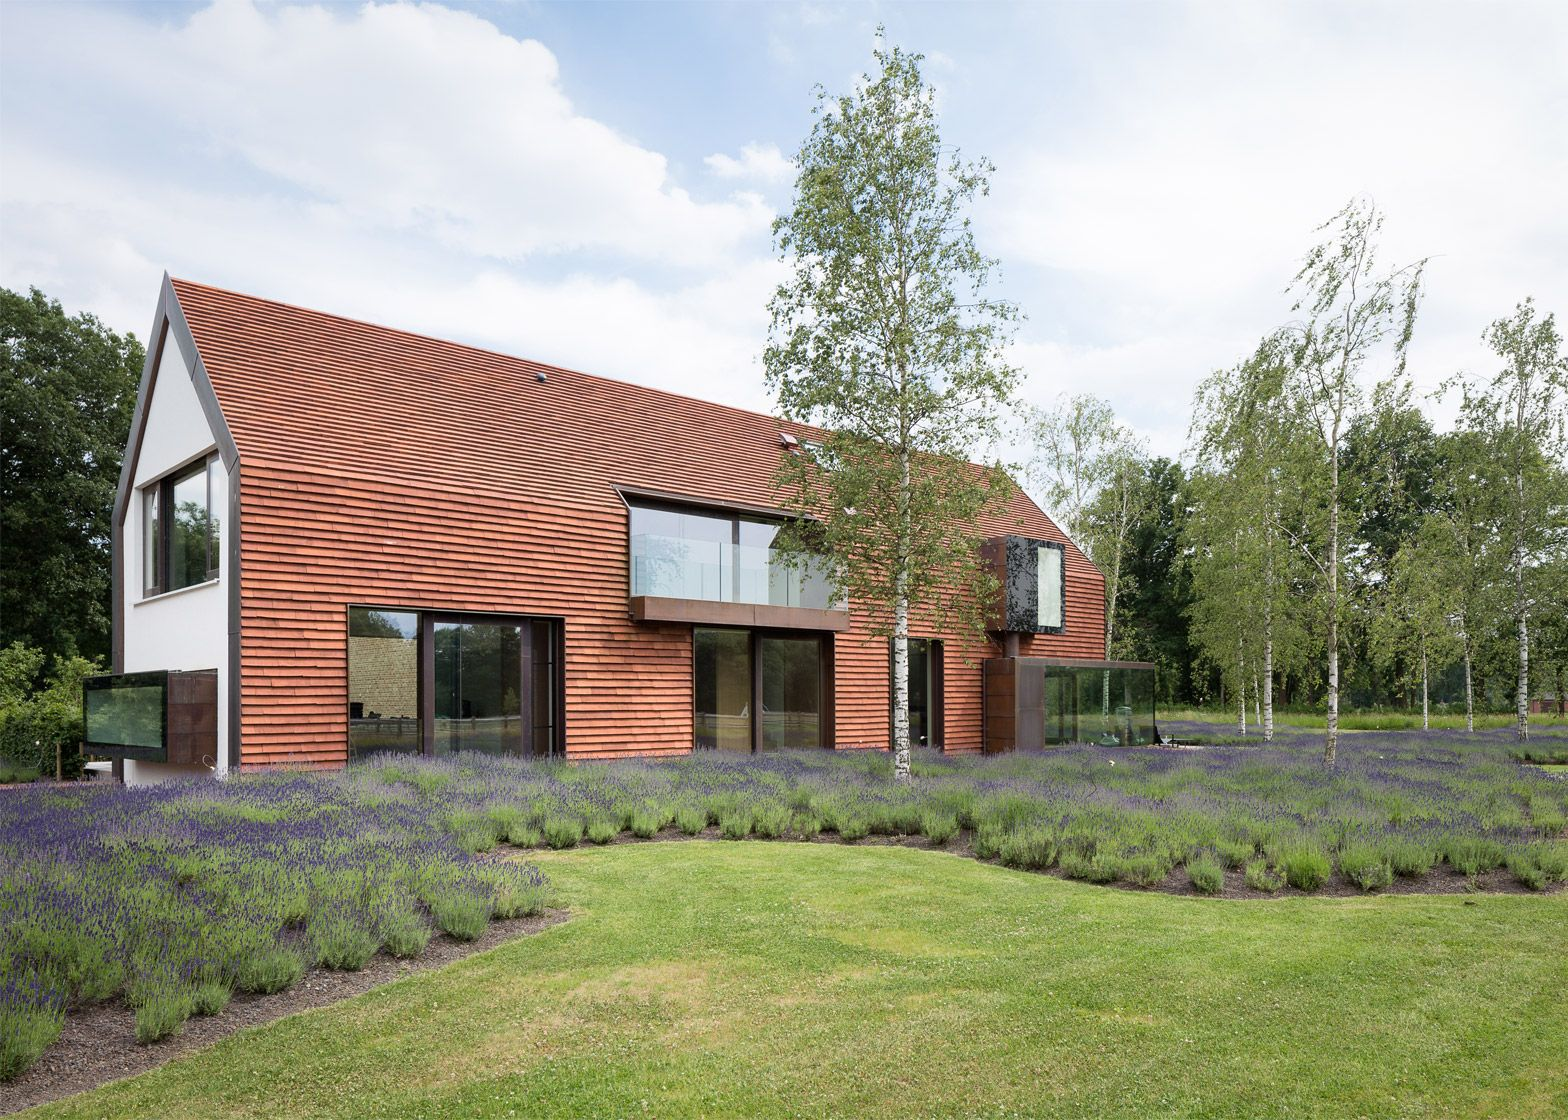 Terracotta Tiles Cover This House On Belgian Farmland Which Was Designed To Match The Traditional